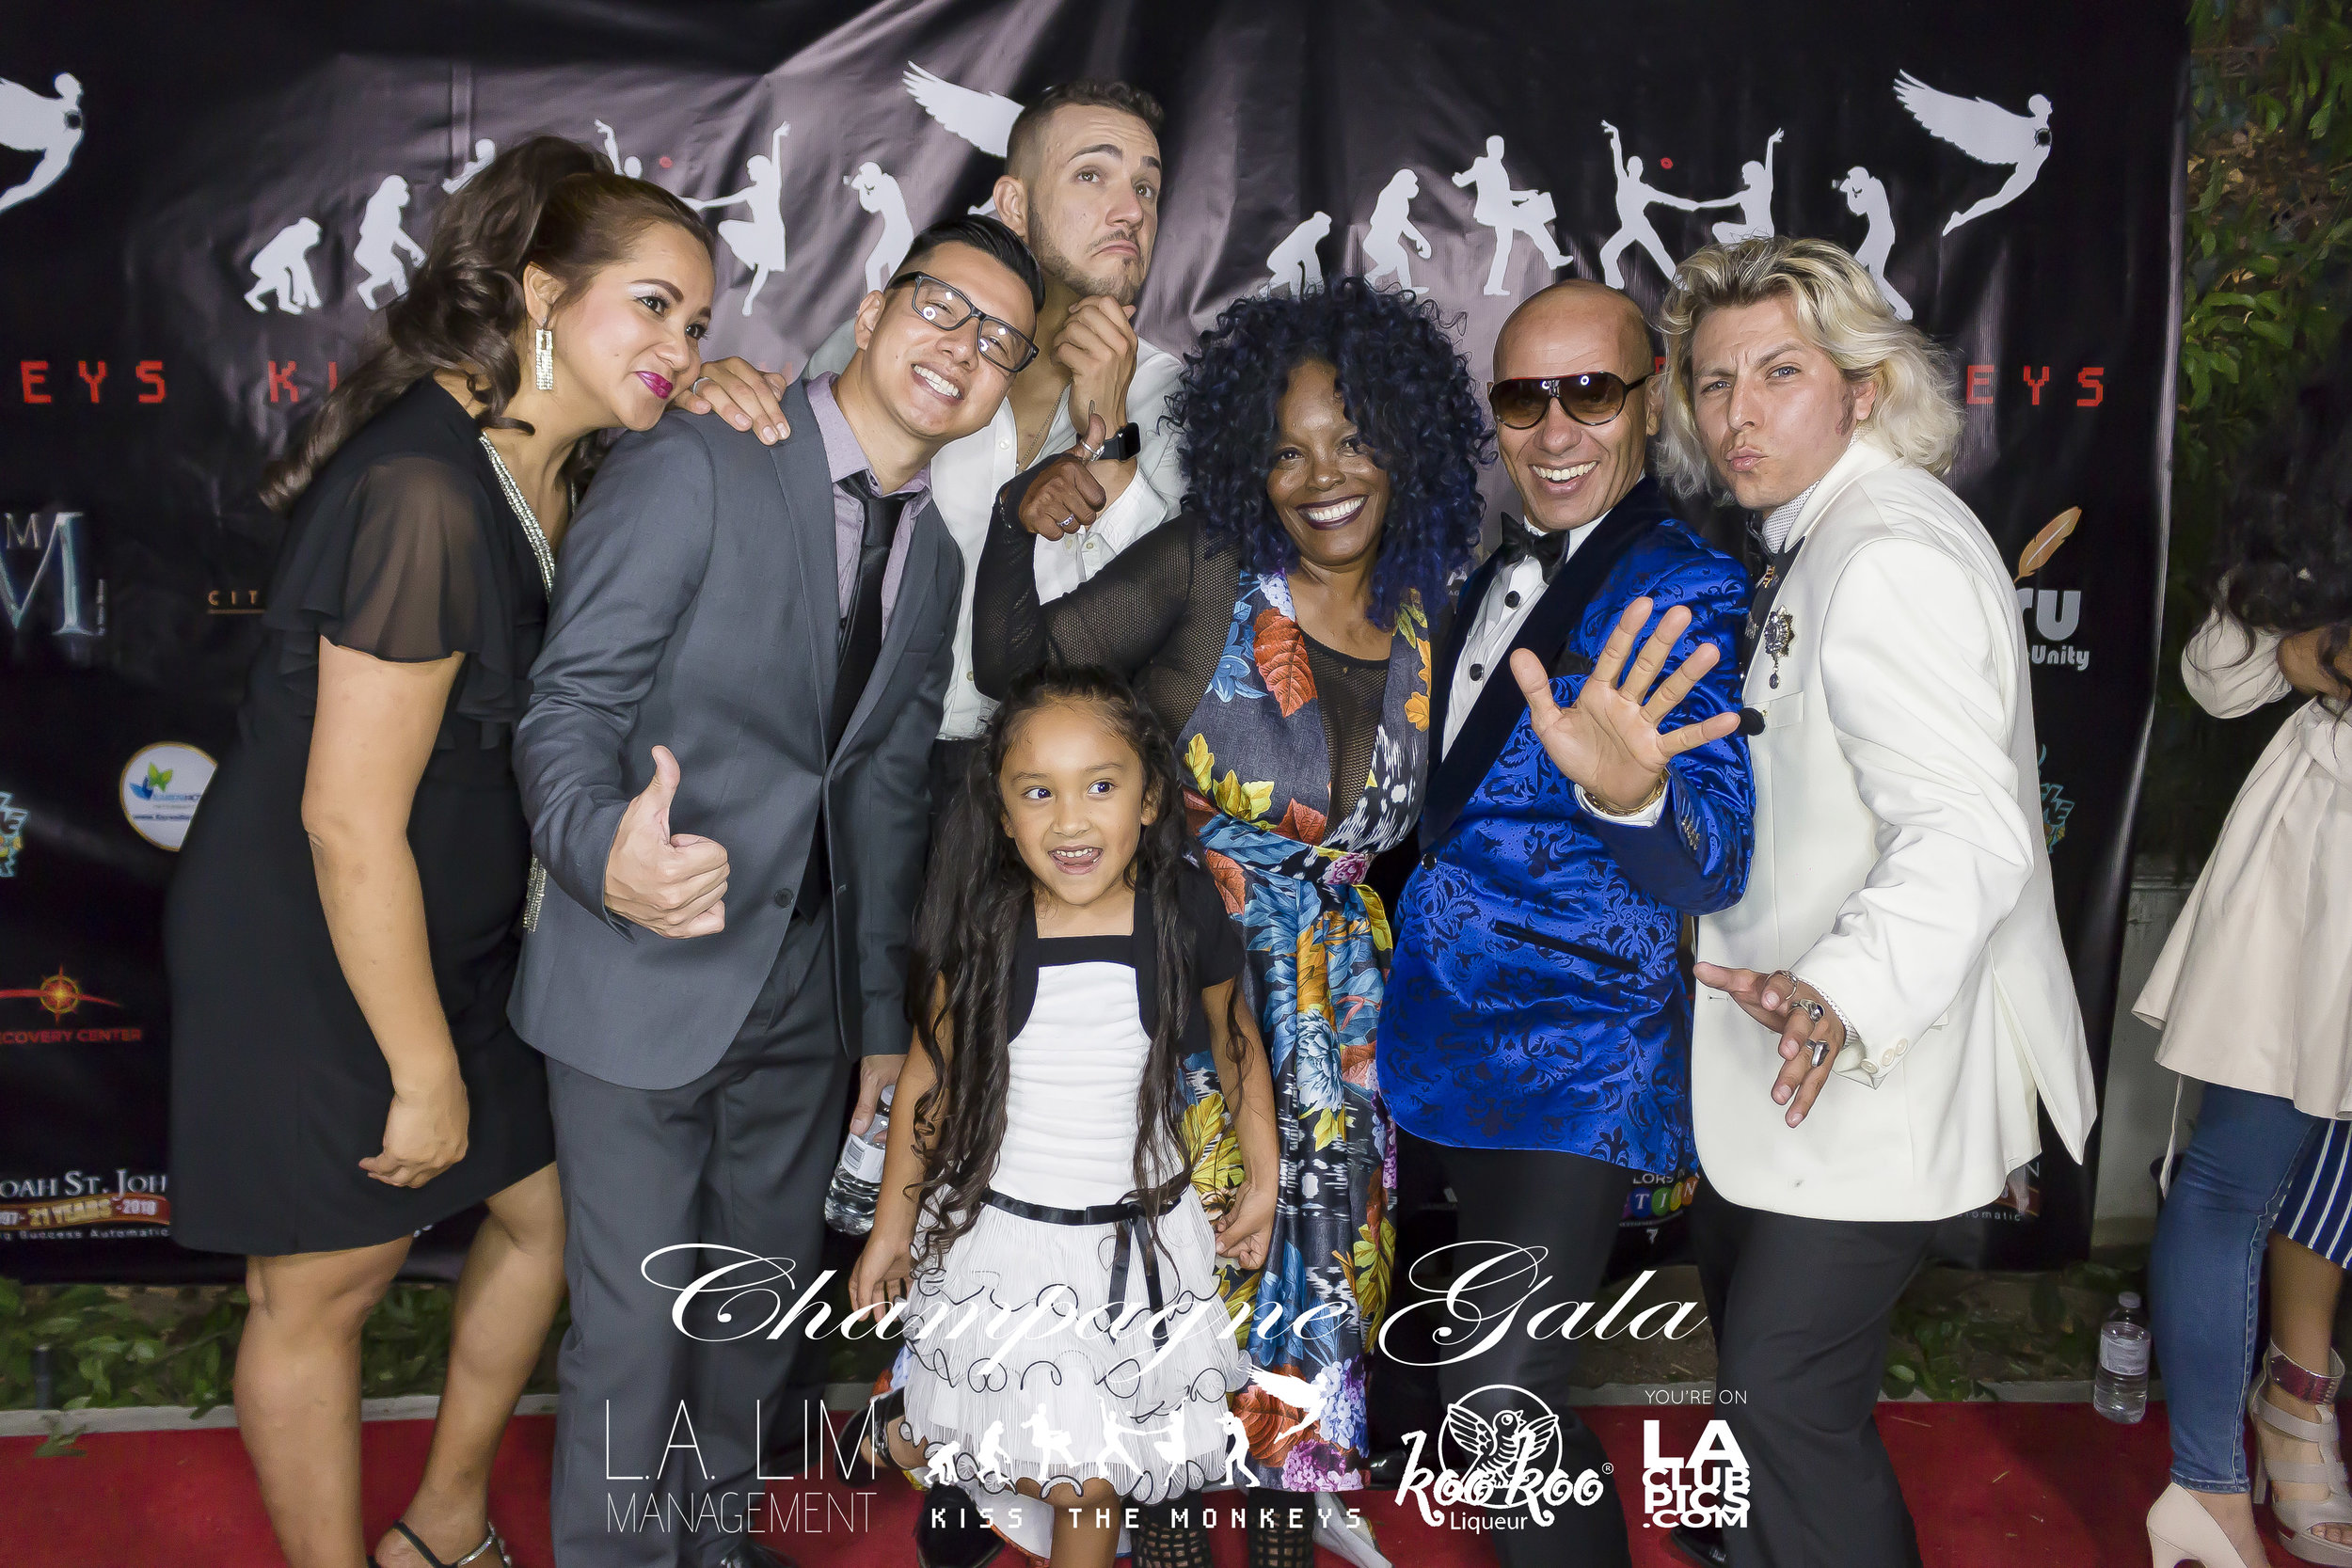 Kiss The Monkeys - Champagne Gala - 07-21-18_165.jpg